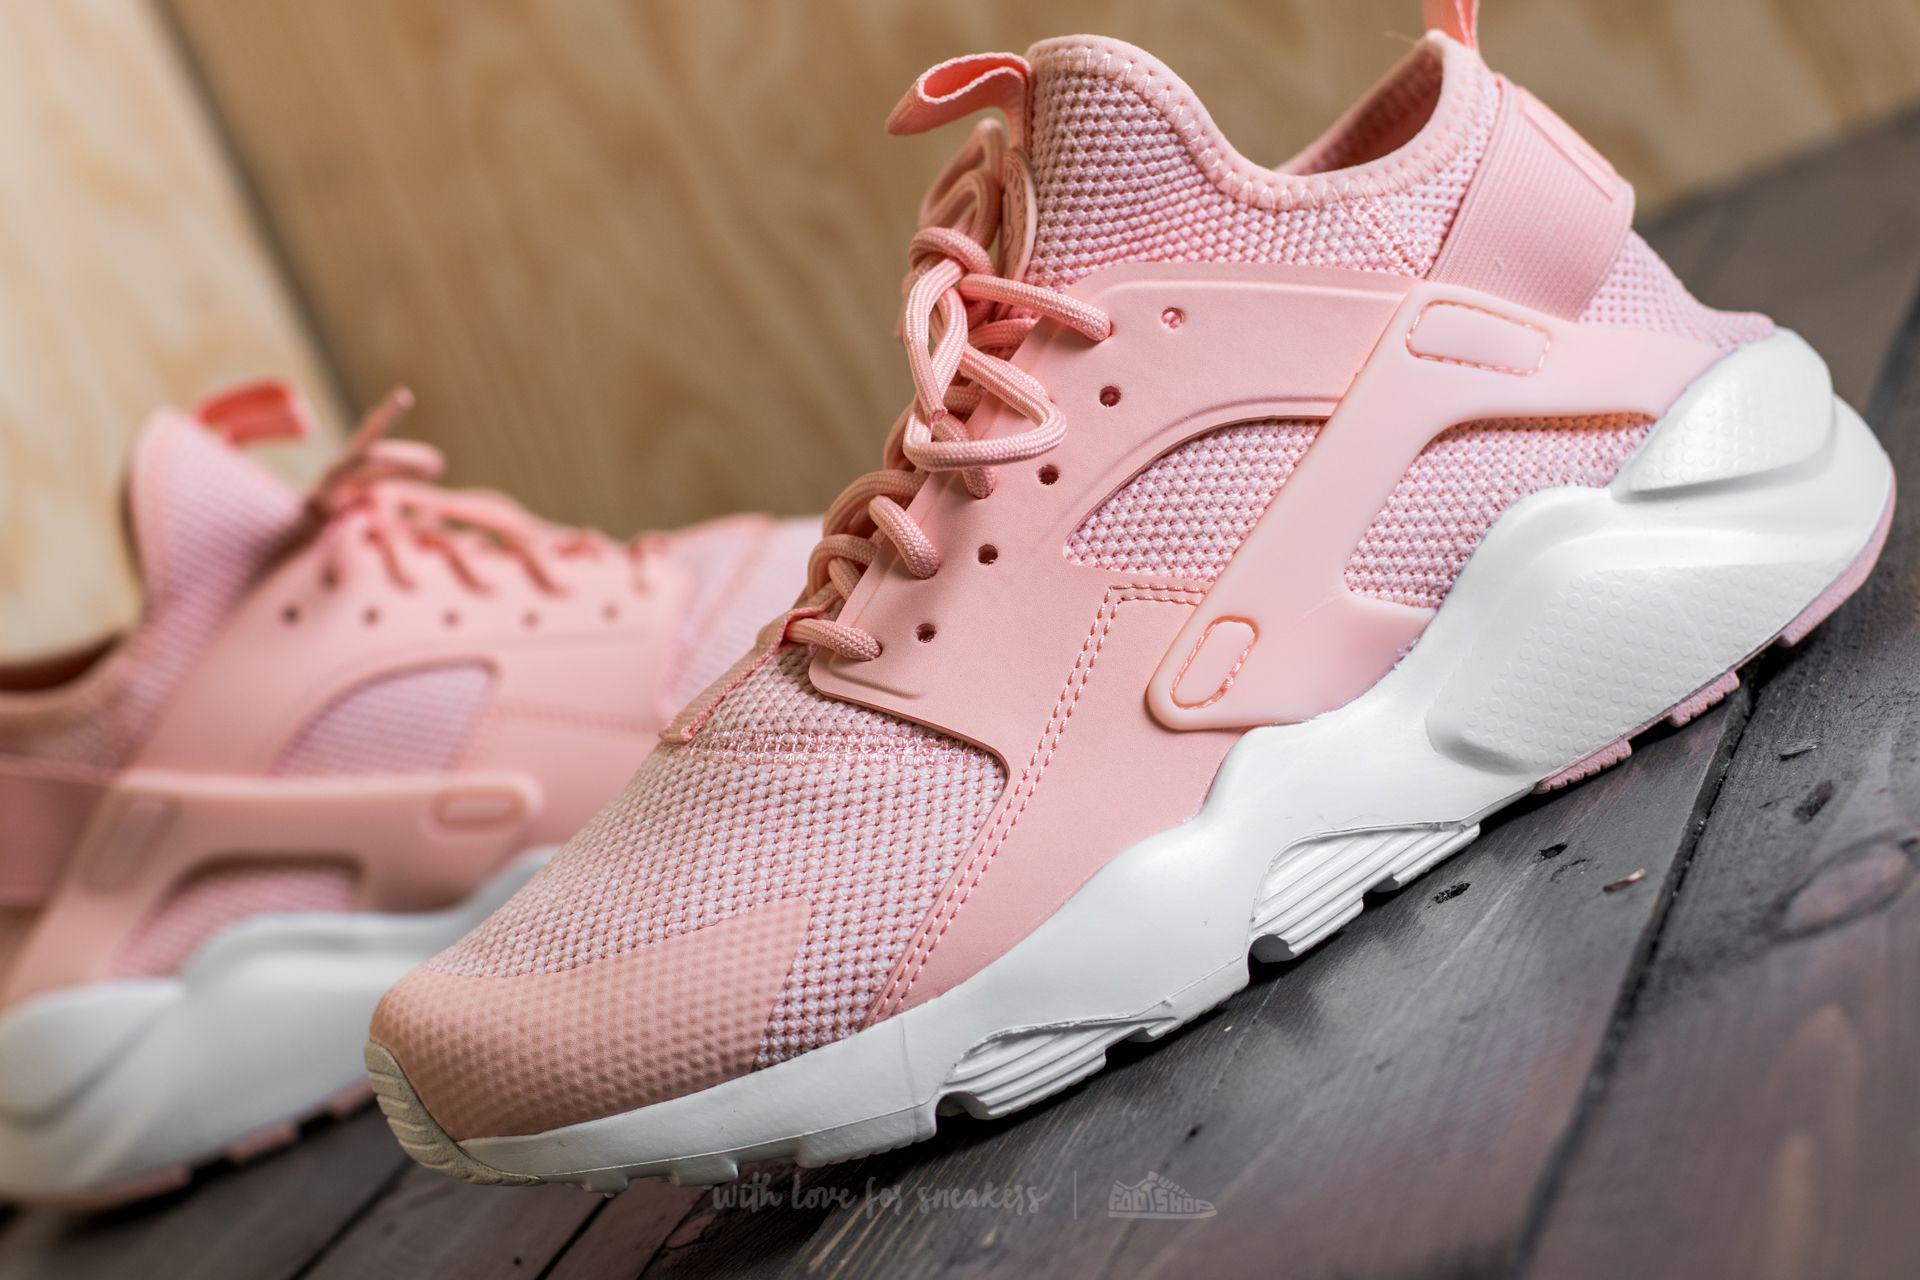 premium selection a73eb bd99f ... order gallery. previously sold at footshop womens nike air huarache  0108f b3d85